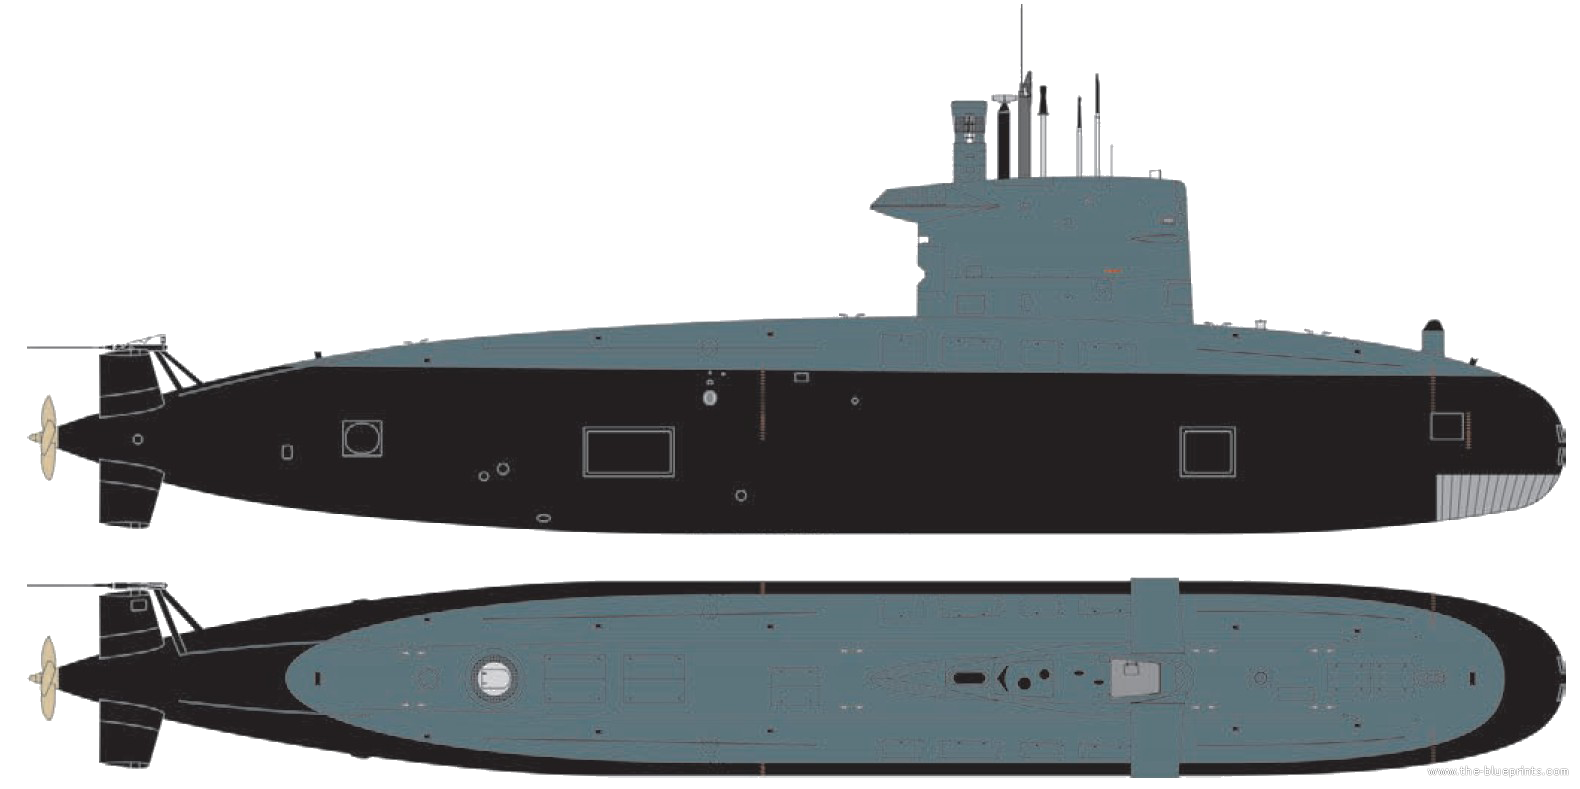 small resolution of the walrus class hull above diagram from blueprints may be only slightly modified for a replacement submarine if there is some swedish design influence